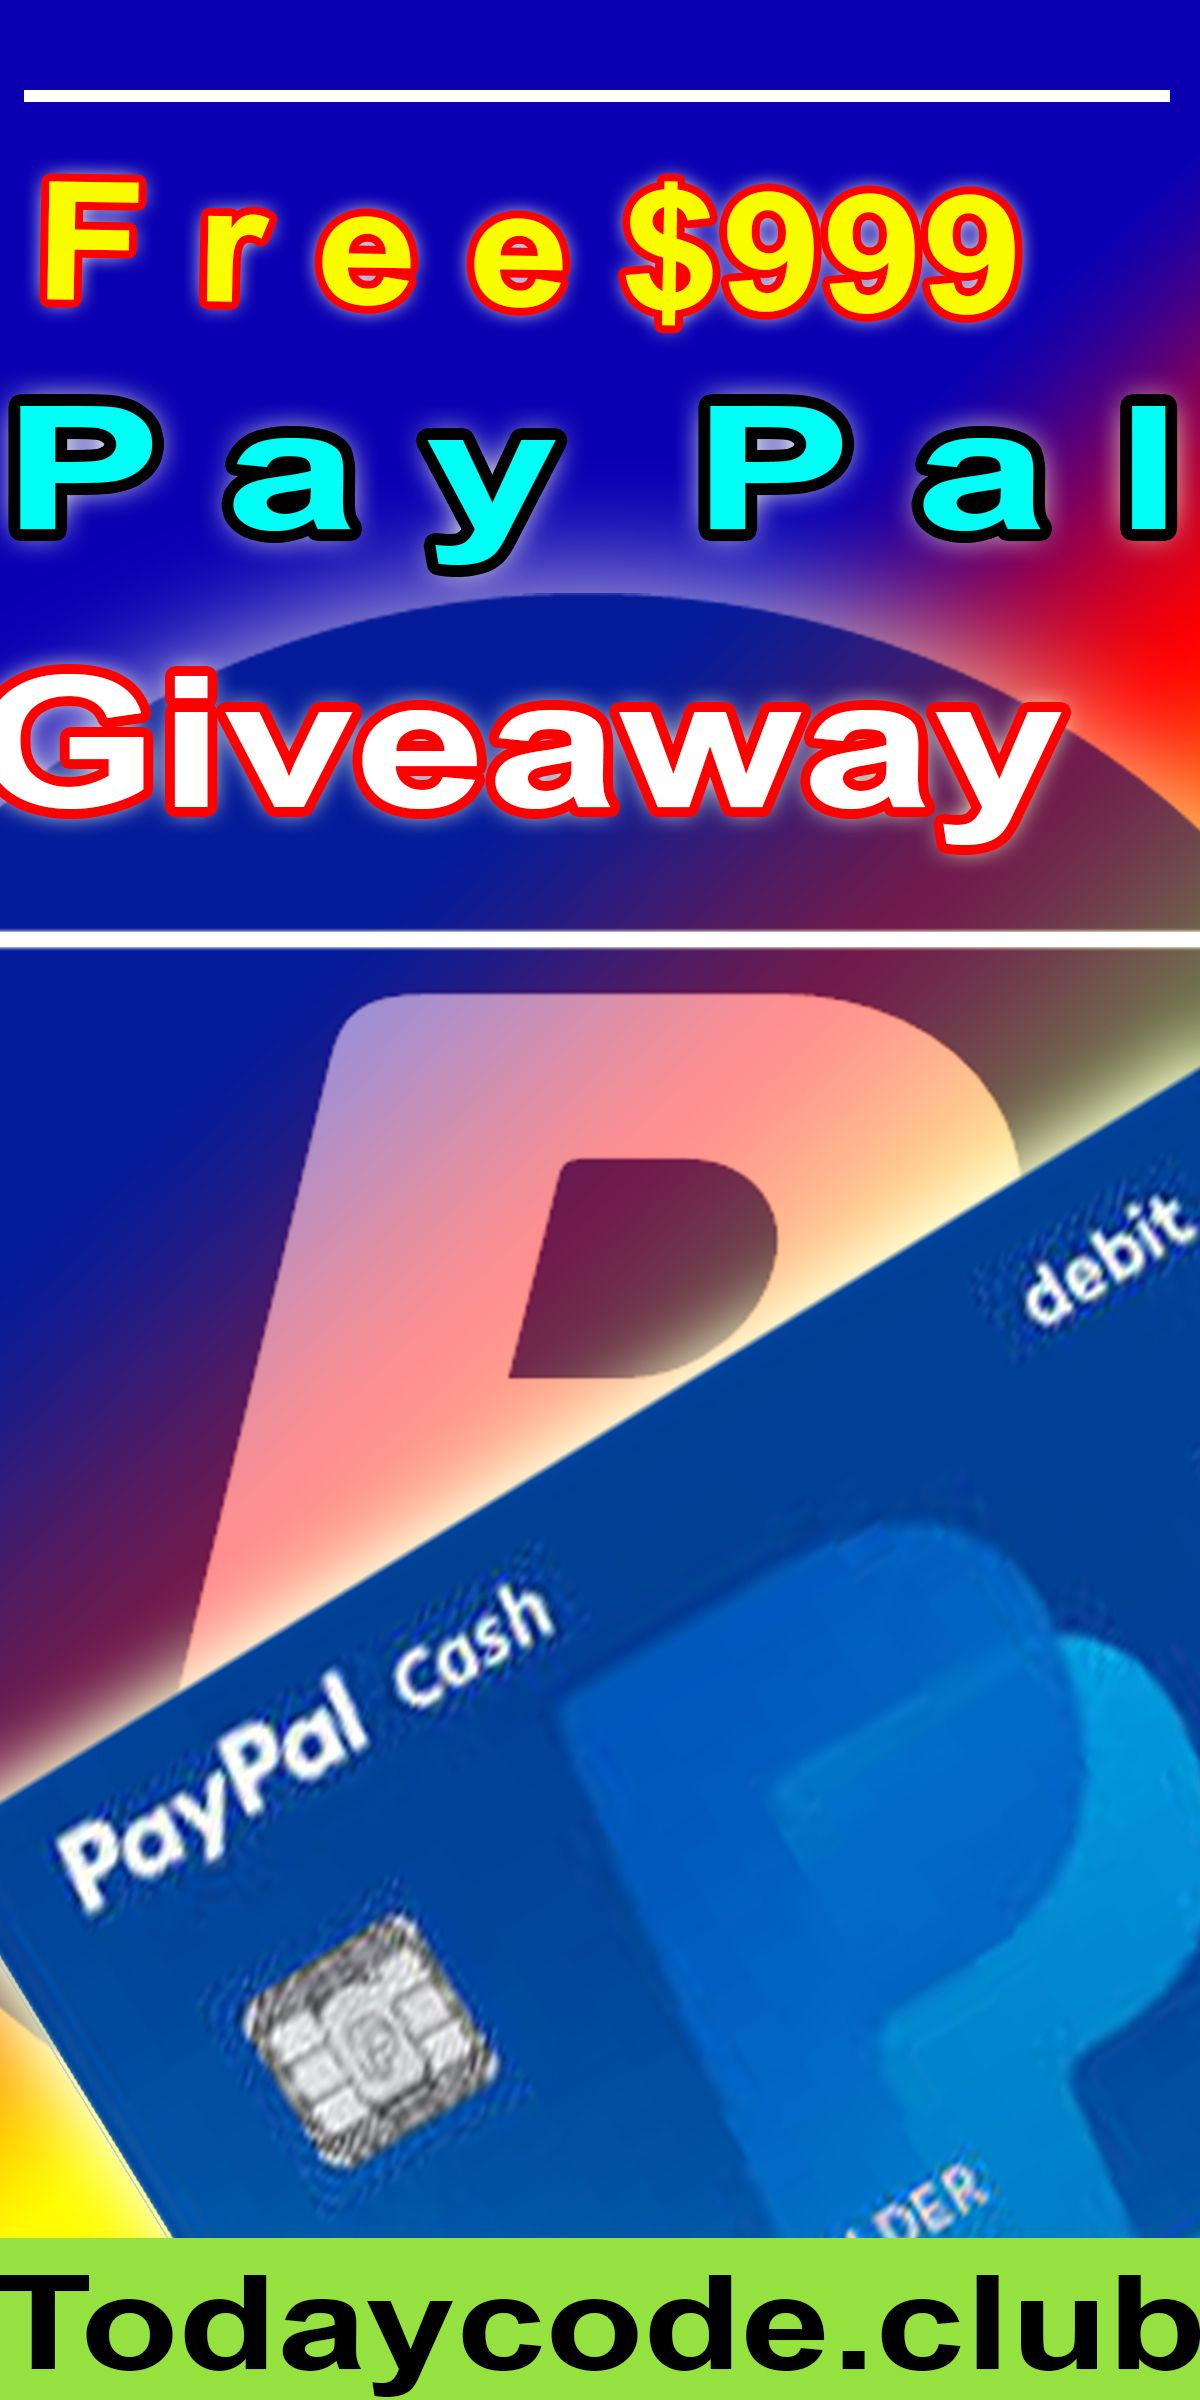 How to get free paypal gift card in 2020 paypal gift